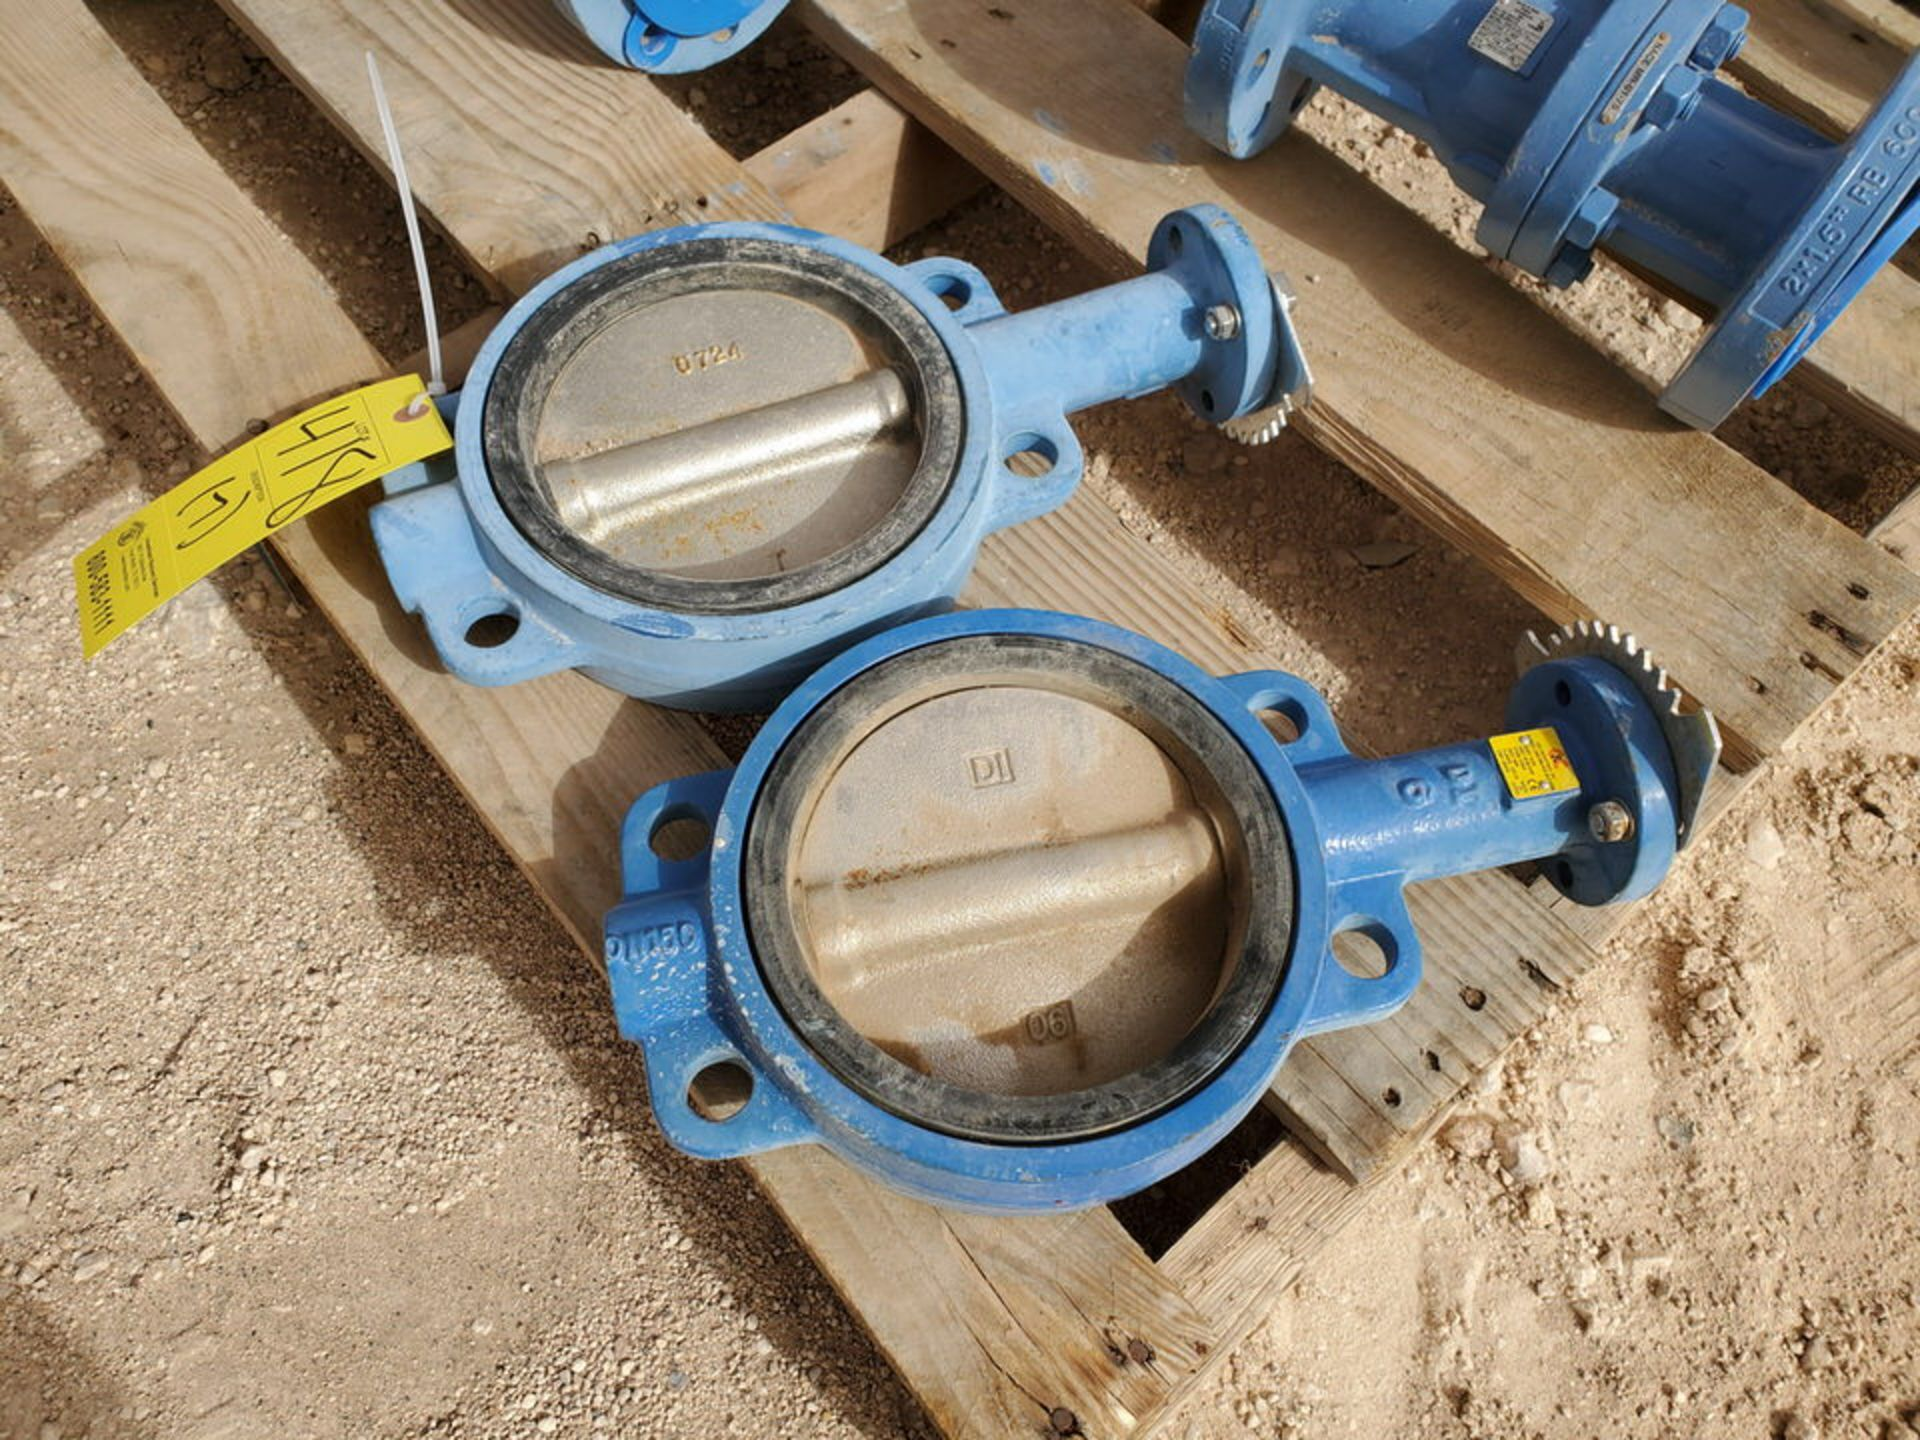 "(7) Assorted Valves (2) 6"" Wafer Butterfly, CE, 200#; (5) 2"" Virgo 600# Ball Valves - Image 8 of 9"